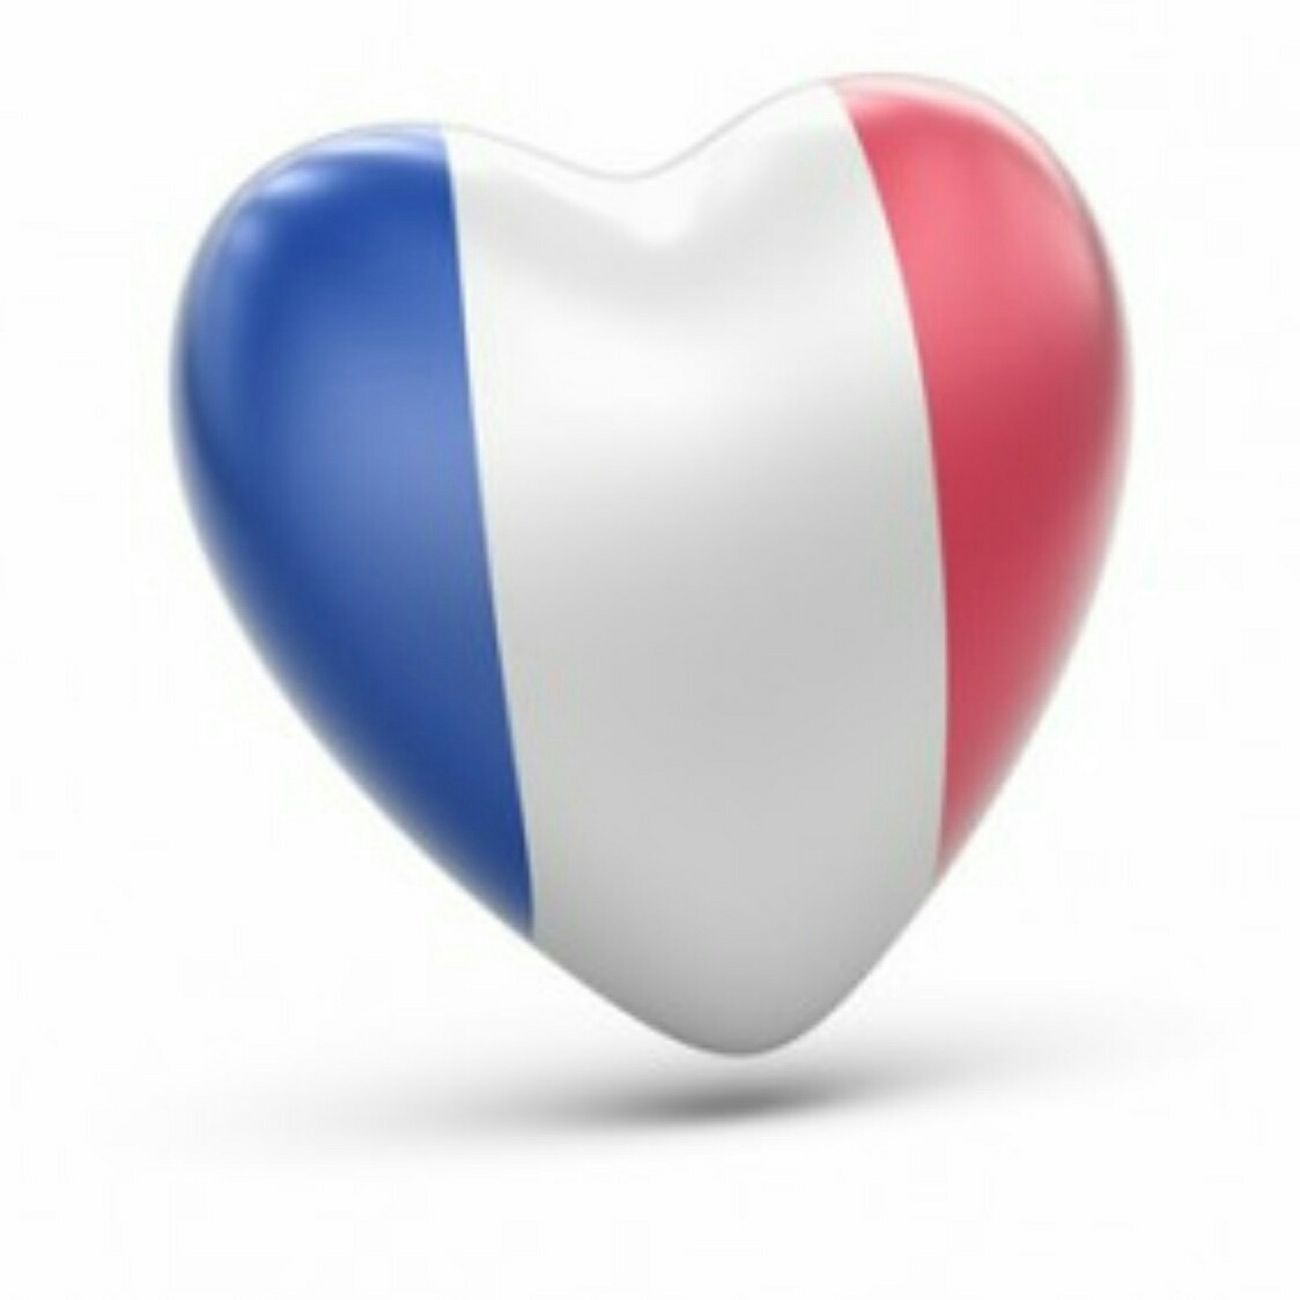 JesuisParis Noterrorism Peace Love